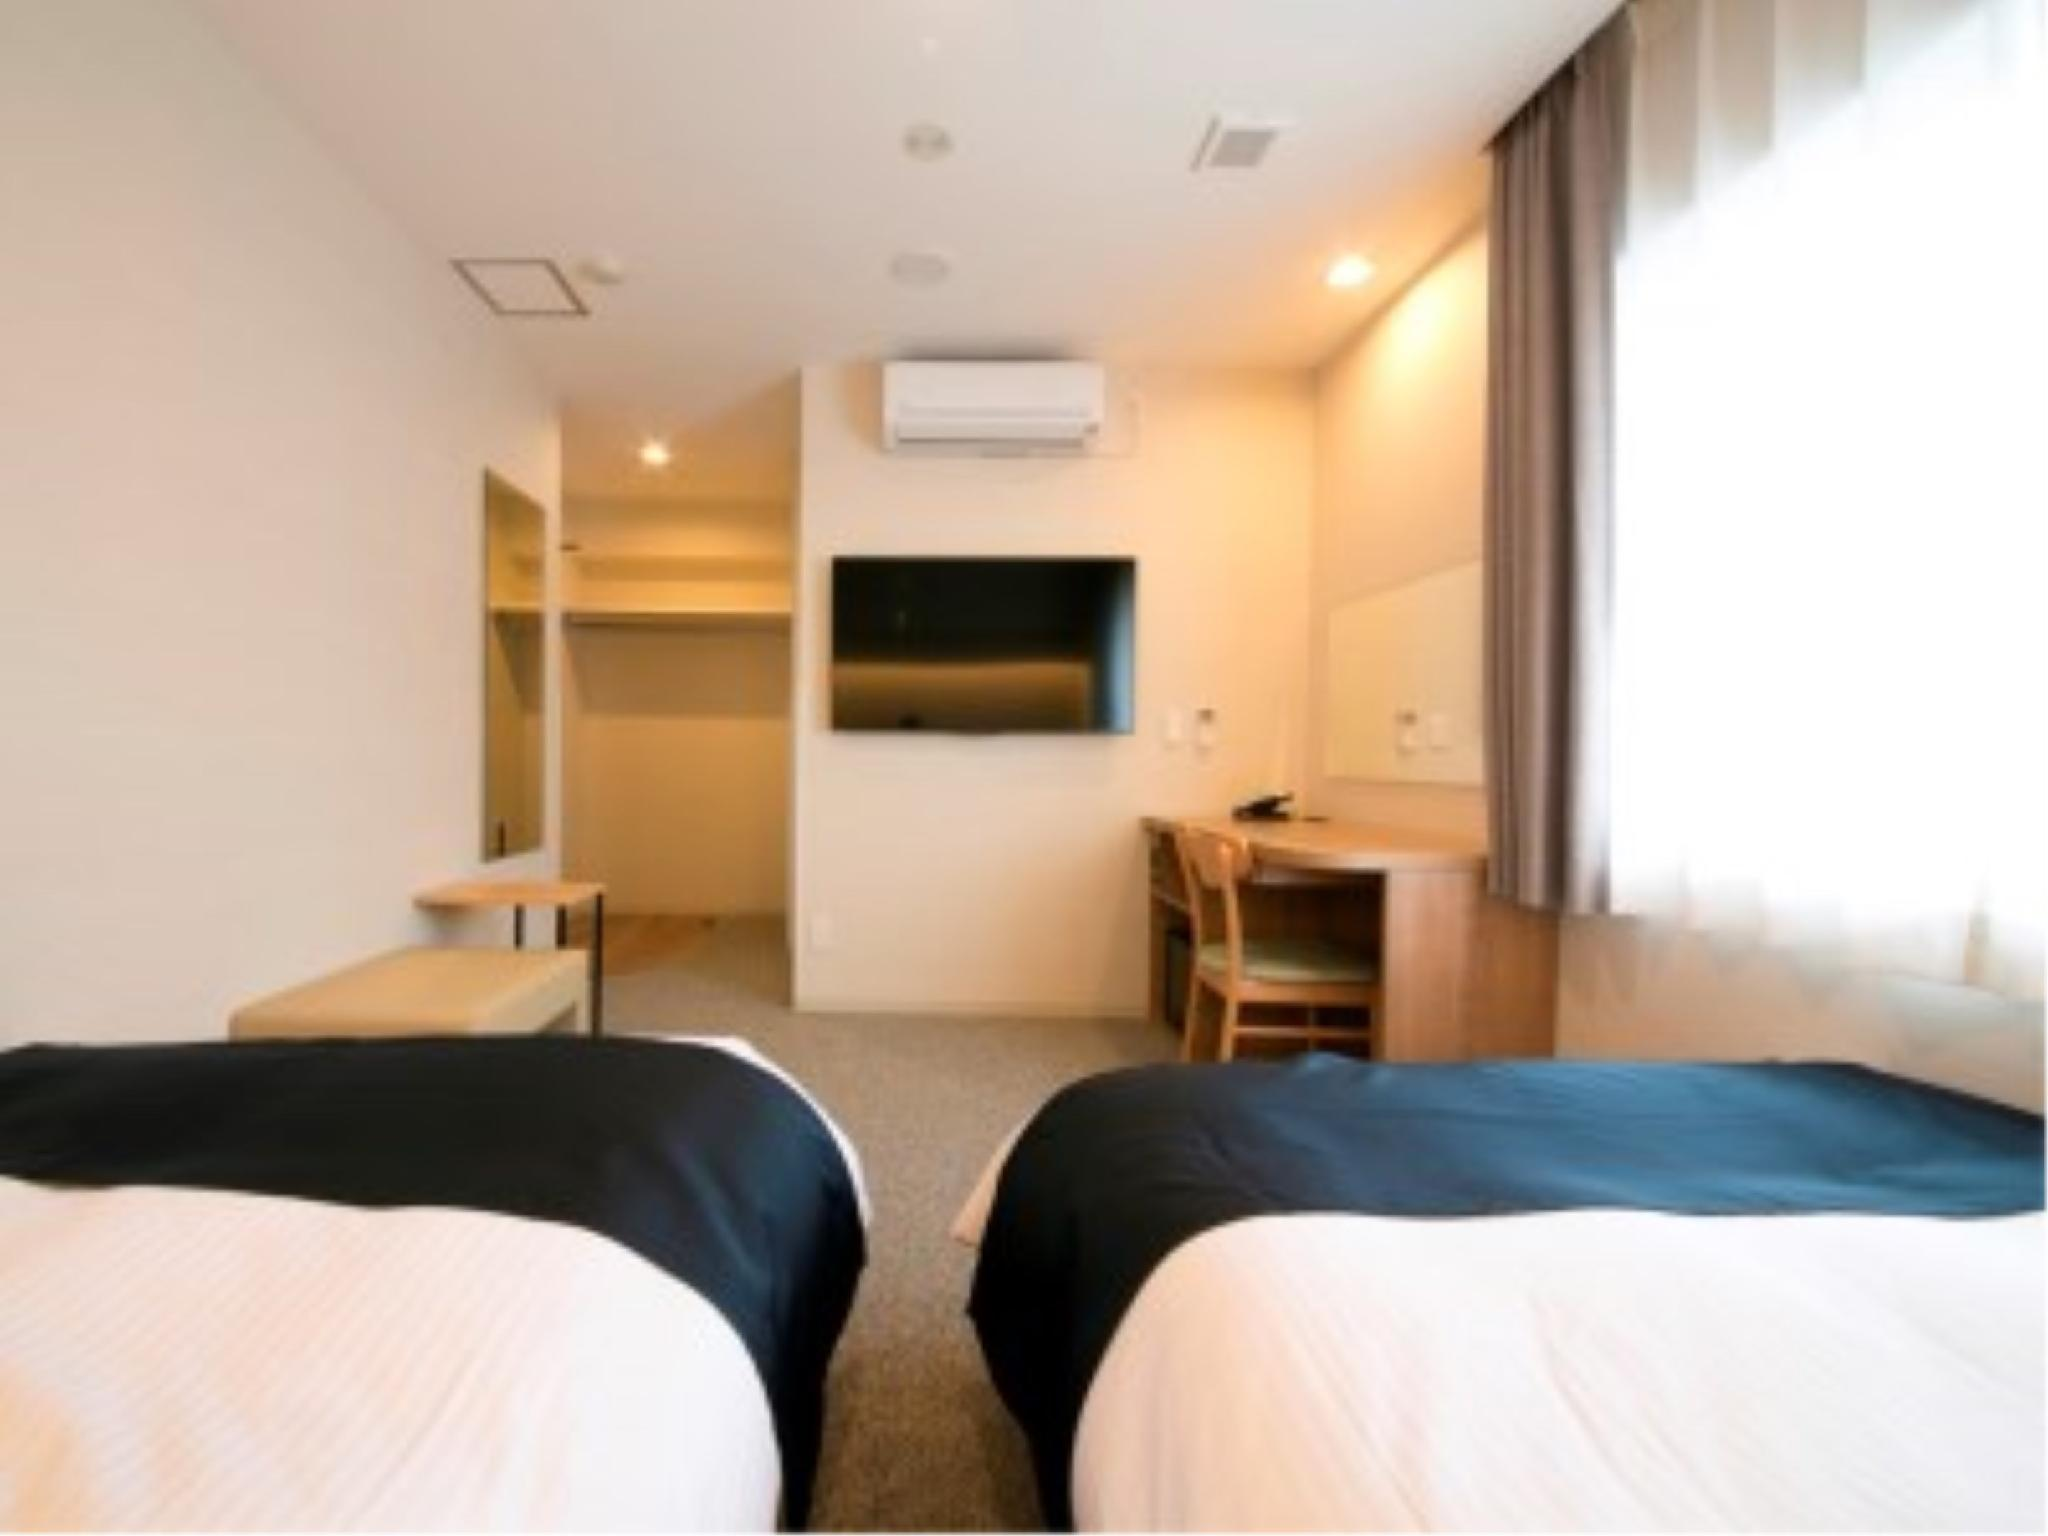 Premium Twin Room (Max 4 Guests *Up to 2 Adult Guests)